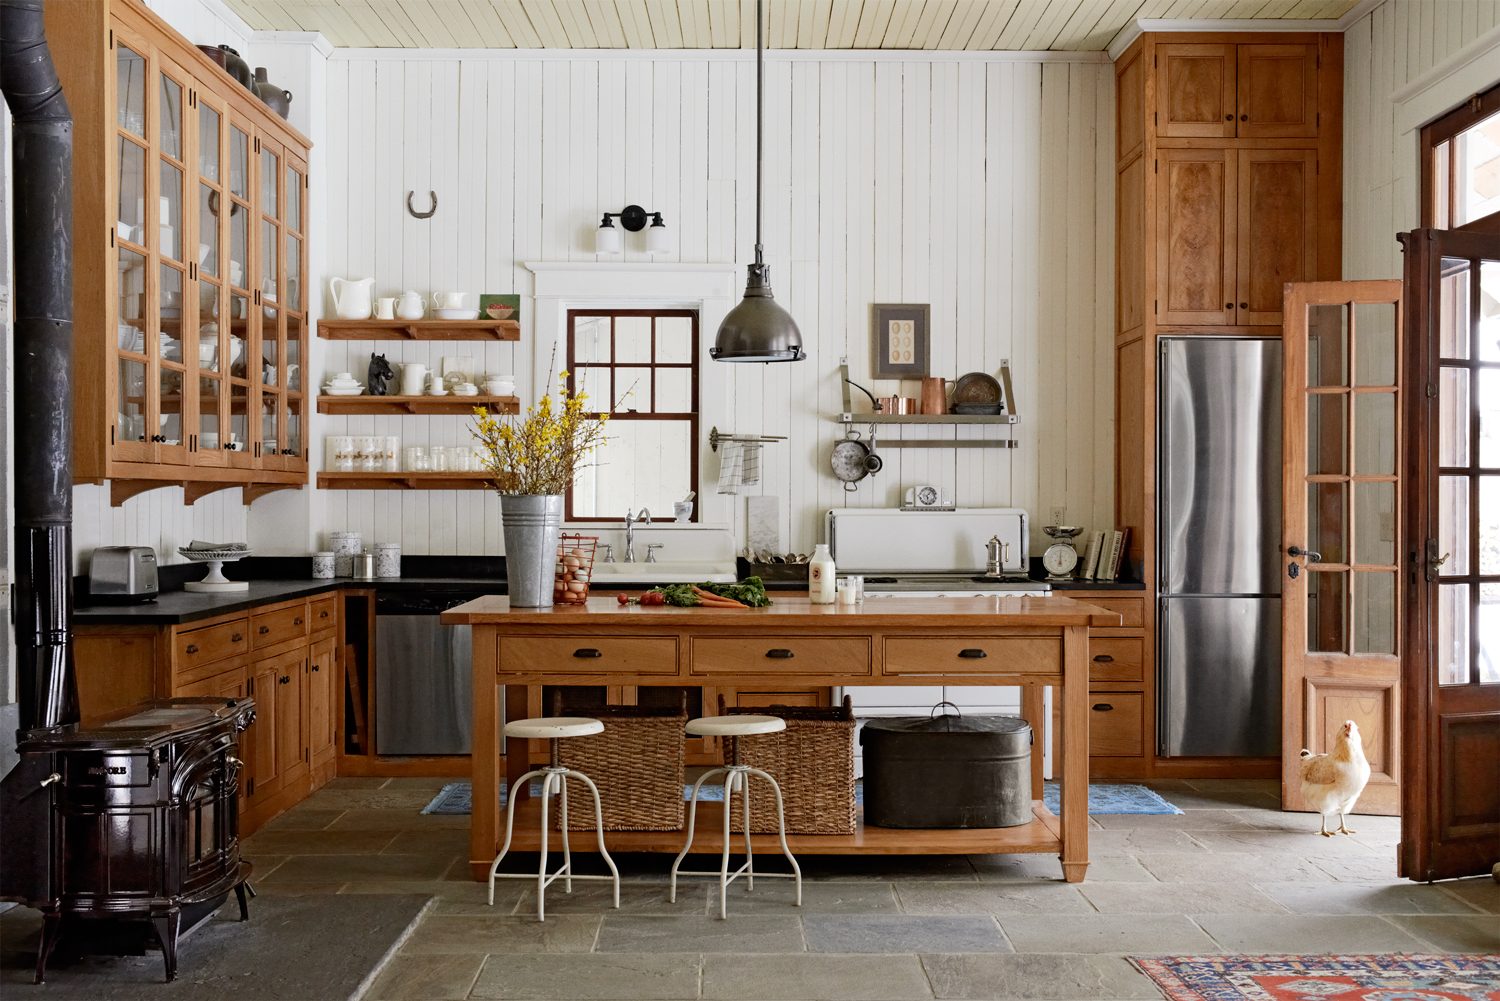 8 ways to add authentic farmhouse style to your kitchen - Country style kitchen cabinets ...